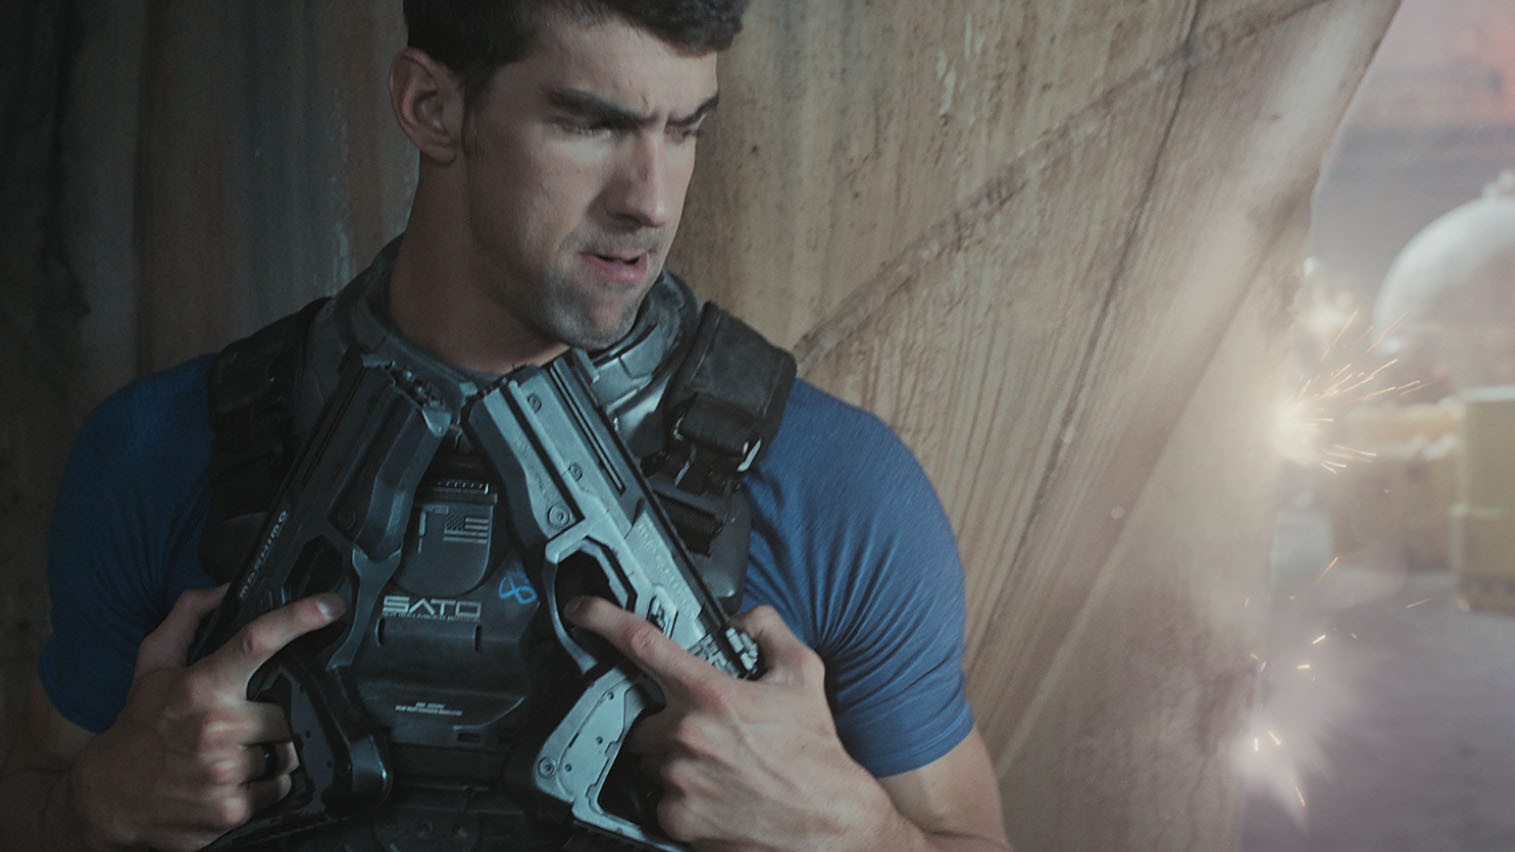 Peter Berg Directs Michael Phelps In New COD Spot